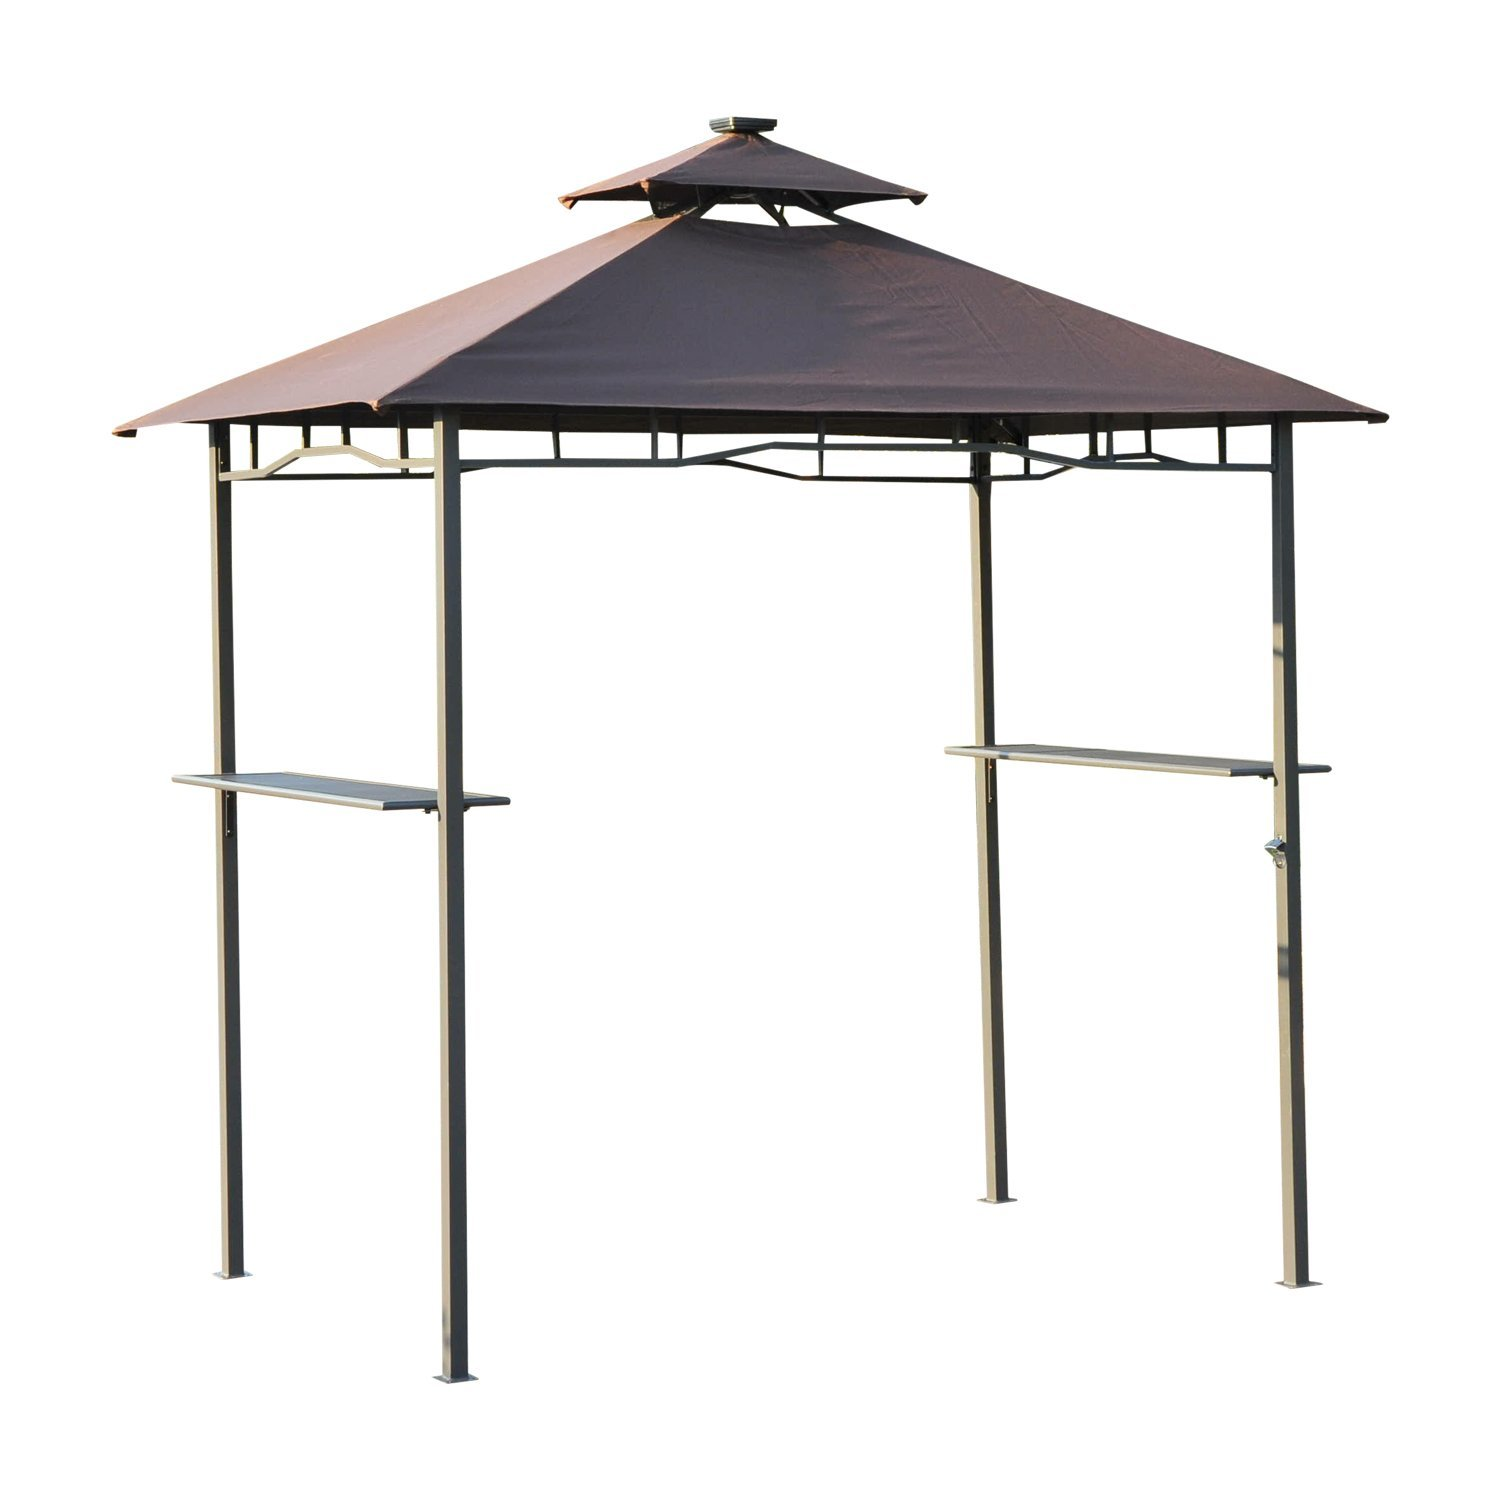 Outsunny 8 ft. 2-Tier Outdoor LED Grill Gazebo by Aosom LLC